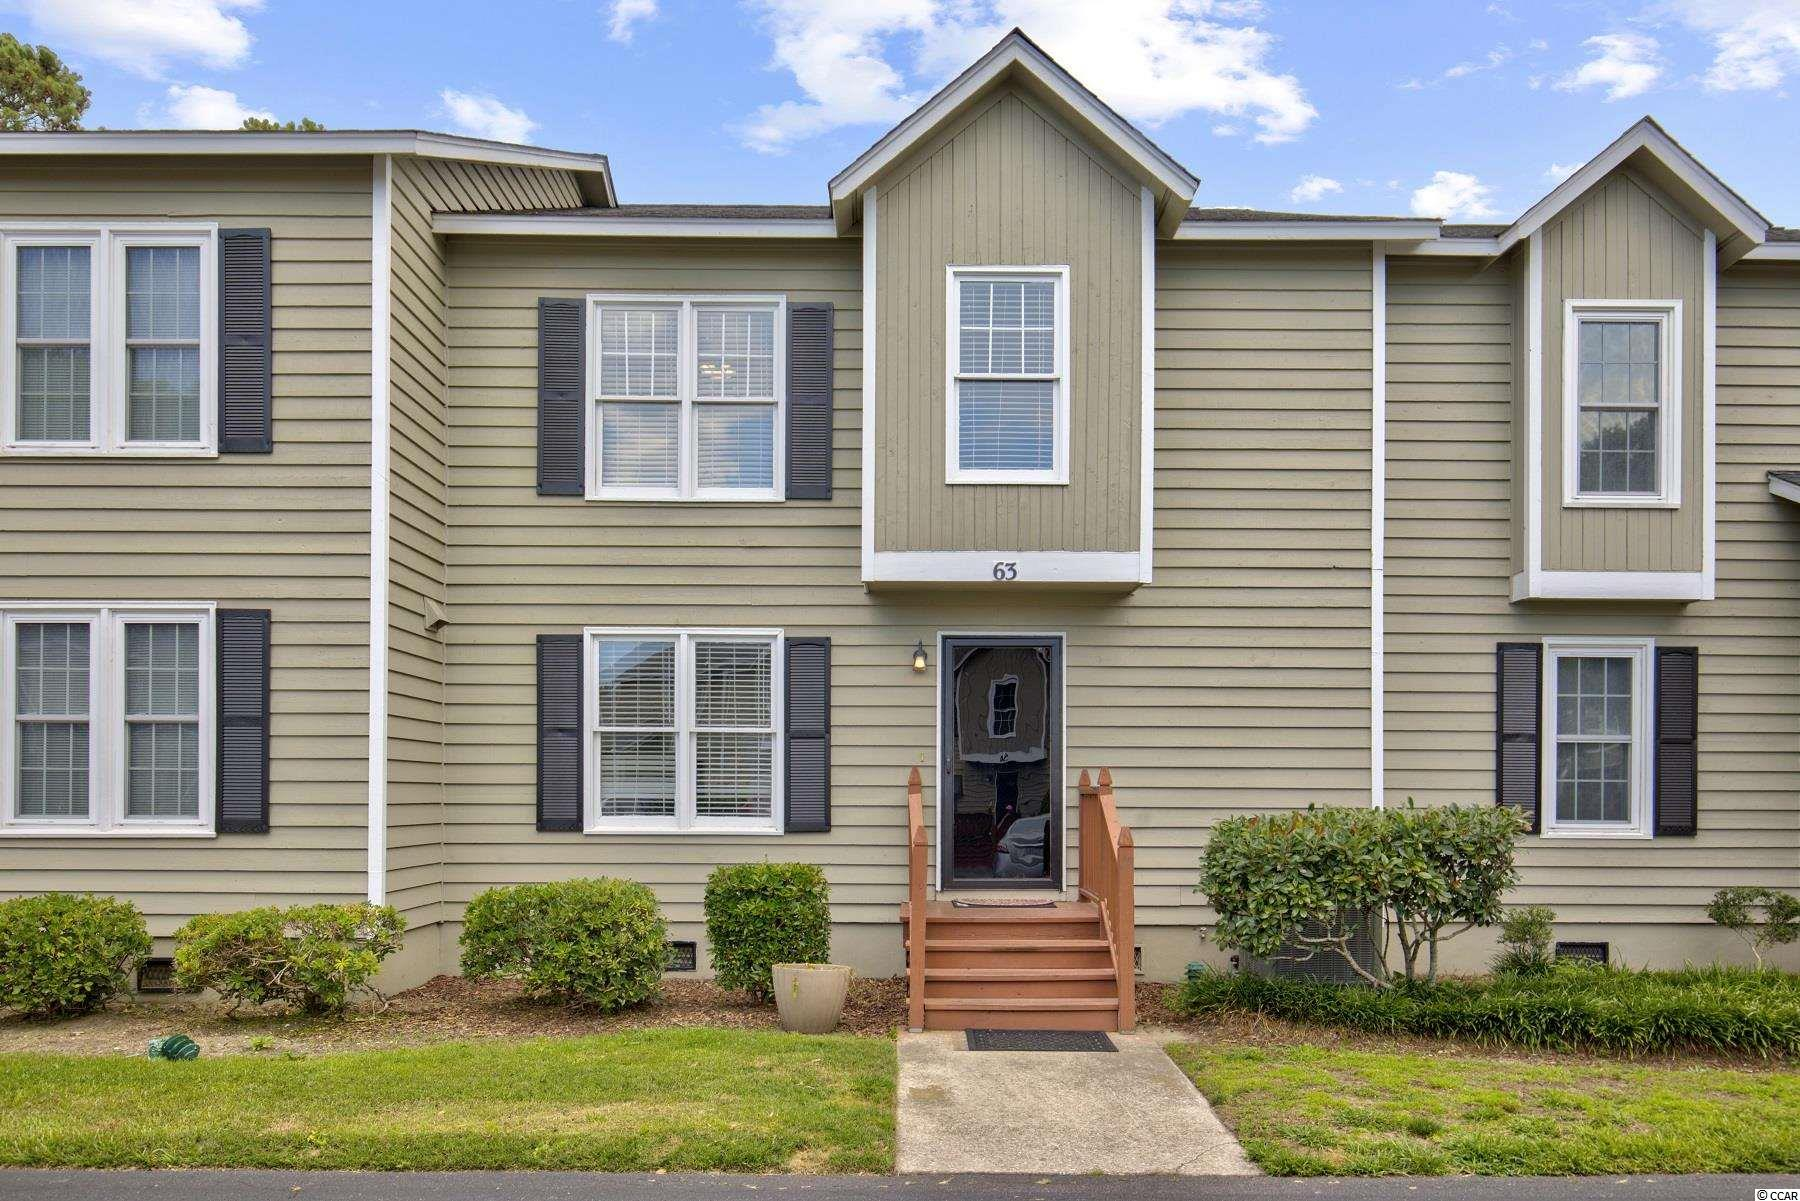 Moss Creek Townhome- Murrells Inlet, SC This charming home offers a large kitchen and dining area a 23'x 11.5' great room, which the sellers have subdivided with furniture to create 2 distinct spaces, and also a powder room on the first floor. The second floor has a large master bedroom overlooking the pond, with a walk out deck to enjoy your coffee in the mornings, as well as 2 additional bedrooms.   Owner has recently replaced all the subfloors and encapsulated the crawlspace, and has redone the floors with new grey laminate and wood stairs, upgraded to a new 2 zone HVAC with all new ductwork, new sliding door, and new a garbage disposal, microwave, dishwasher, washer and dryer. The HOA has recently replaced all the windows and siding. The new windows along with the new HVAC units keep the electricity bills exceptionally low. The best part is the location!! This unit is walking distance to the inlet, park, restaurants, live music and the bike path. The community's amenities include an outdoor pool, tennis courts and clubhouse.